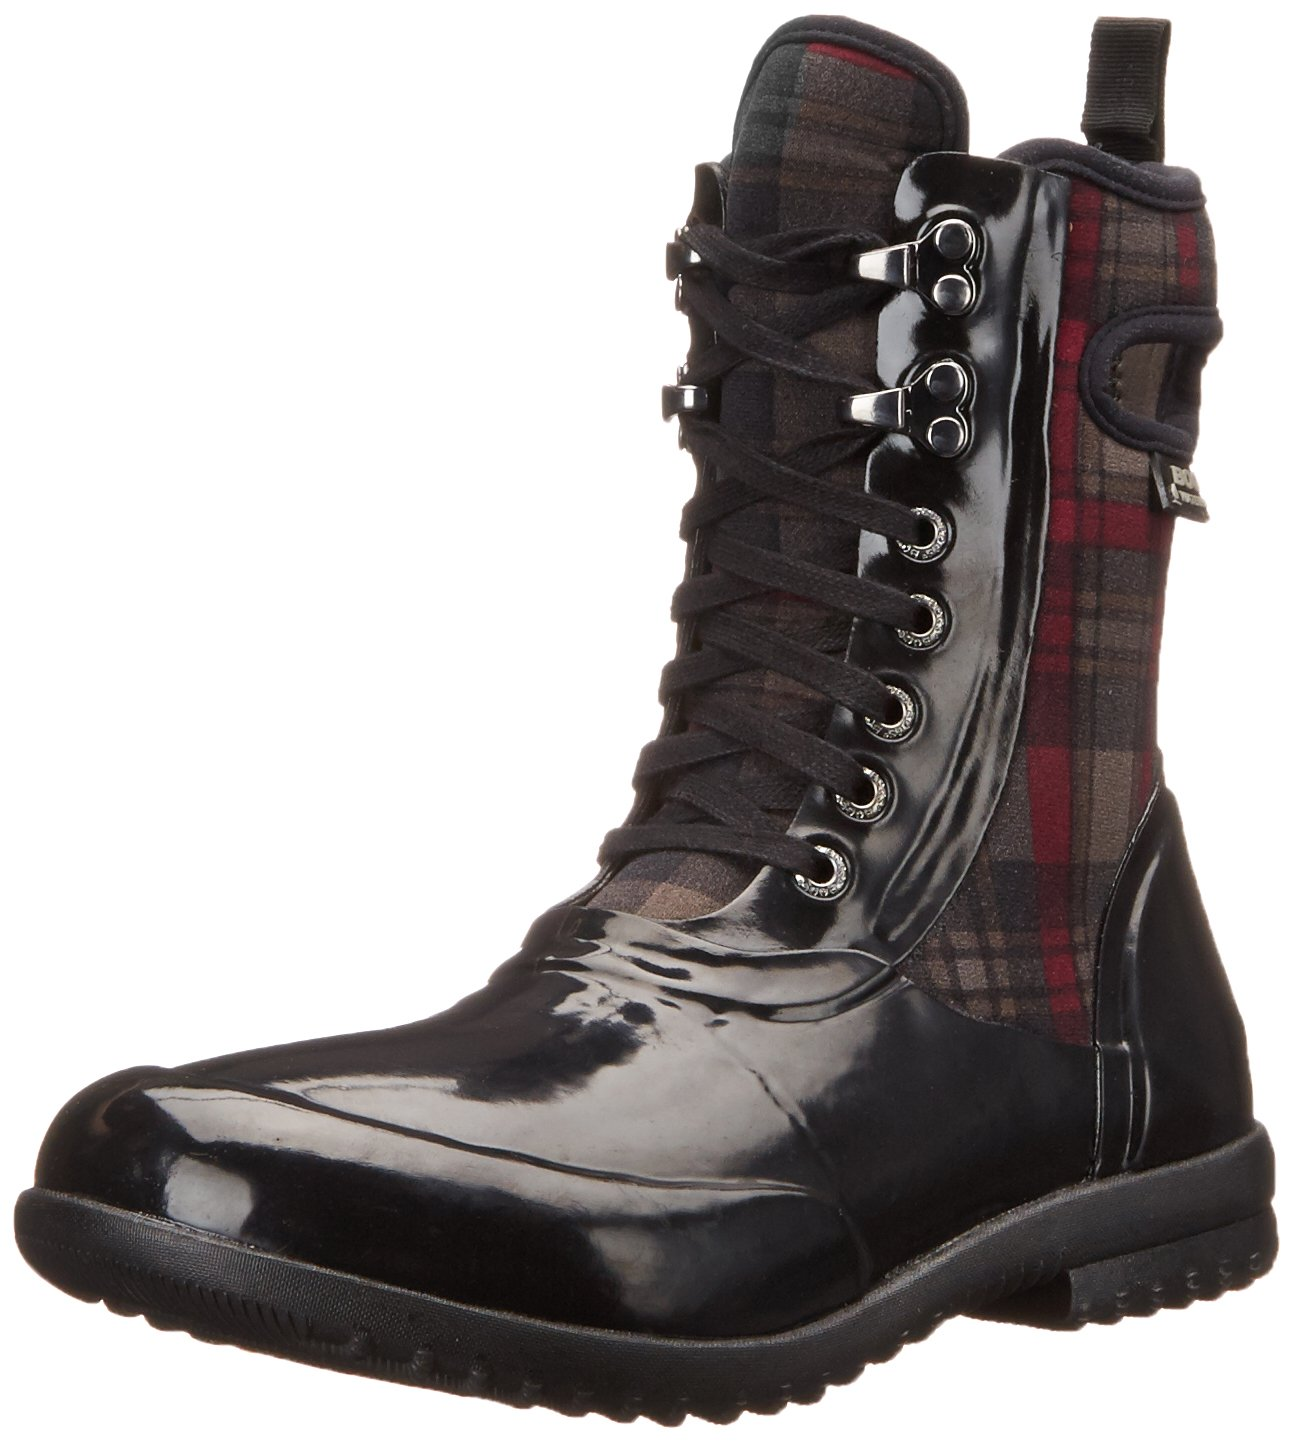 Bogs Women's Sidney Cravat Snow Boot B00QMQAG50 10 B(M) US|Plaid Print/Black